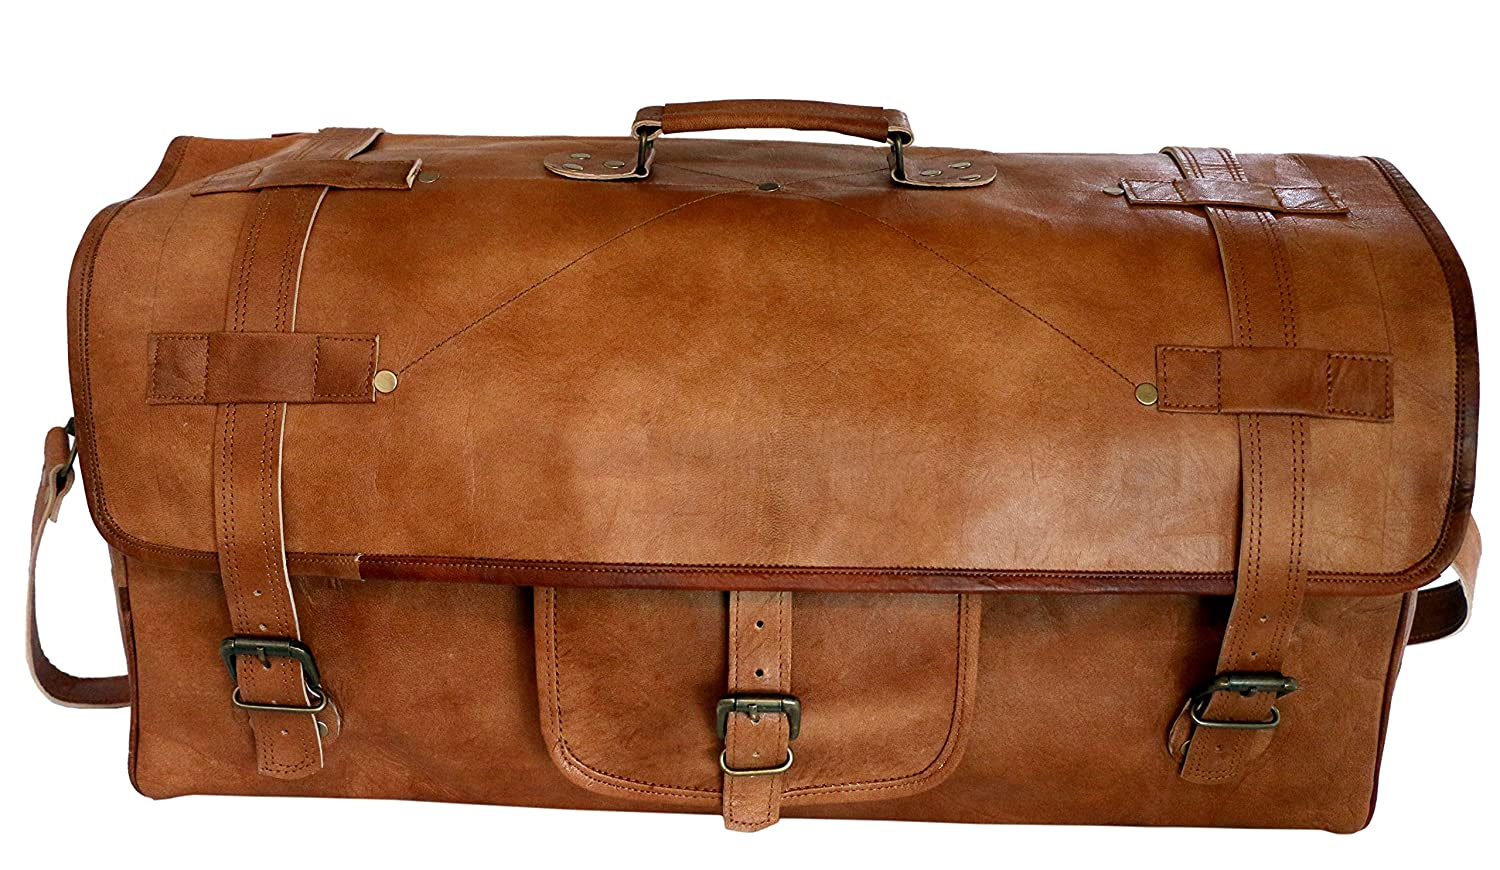 FAB 22 Leather Duffel Bag Holdall Travel Overnight Weekend Gym Sports Luggage